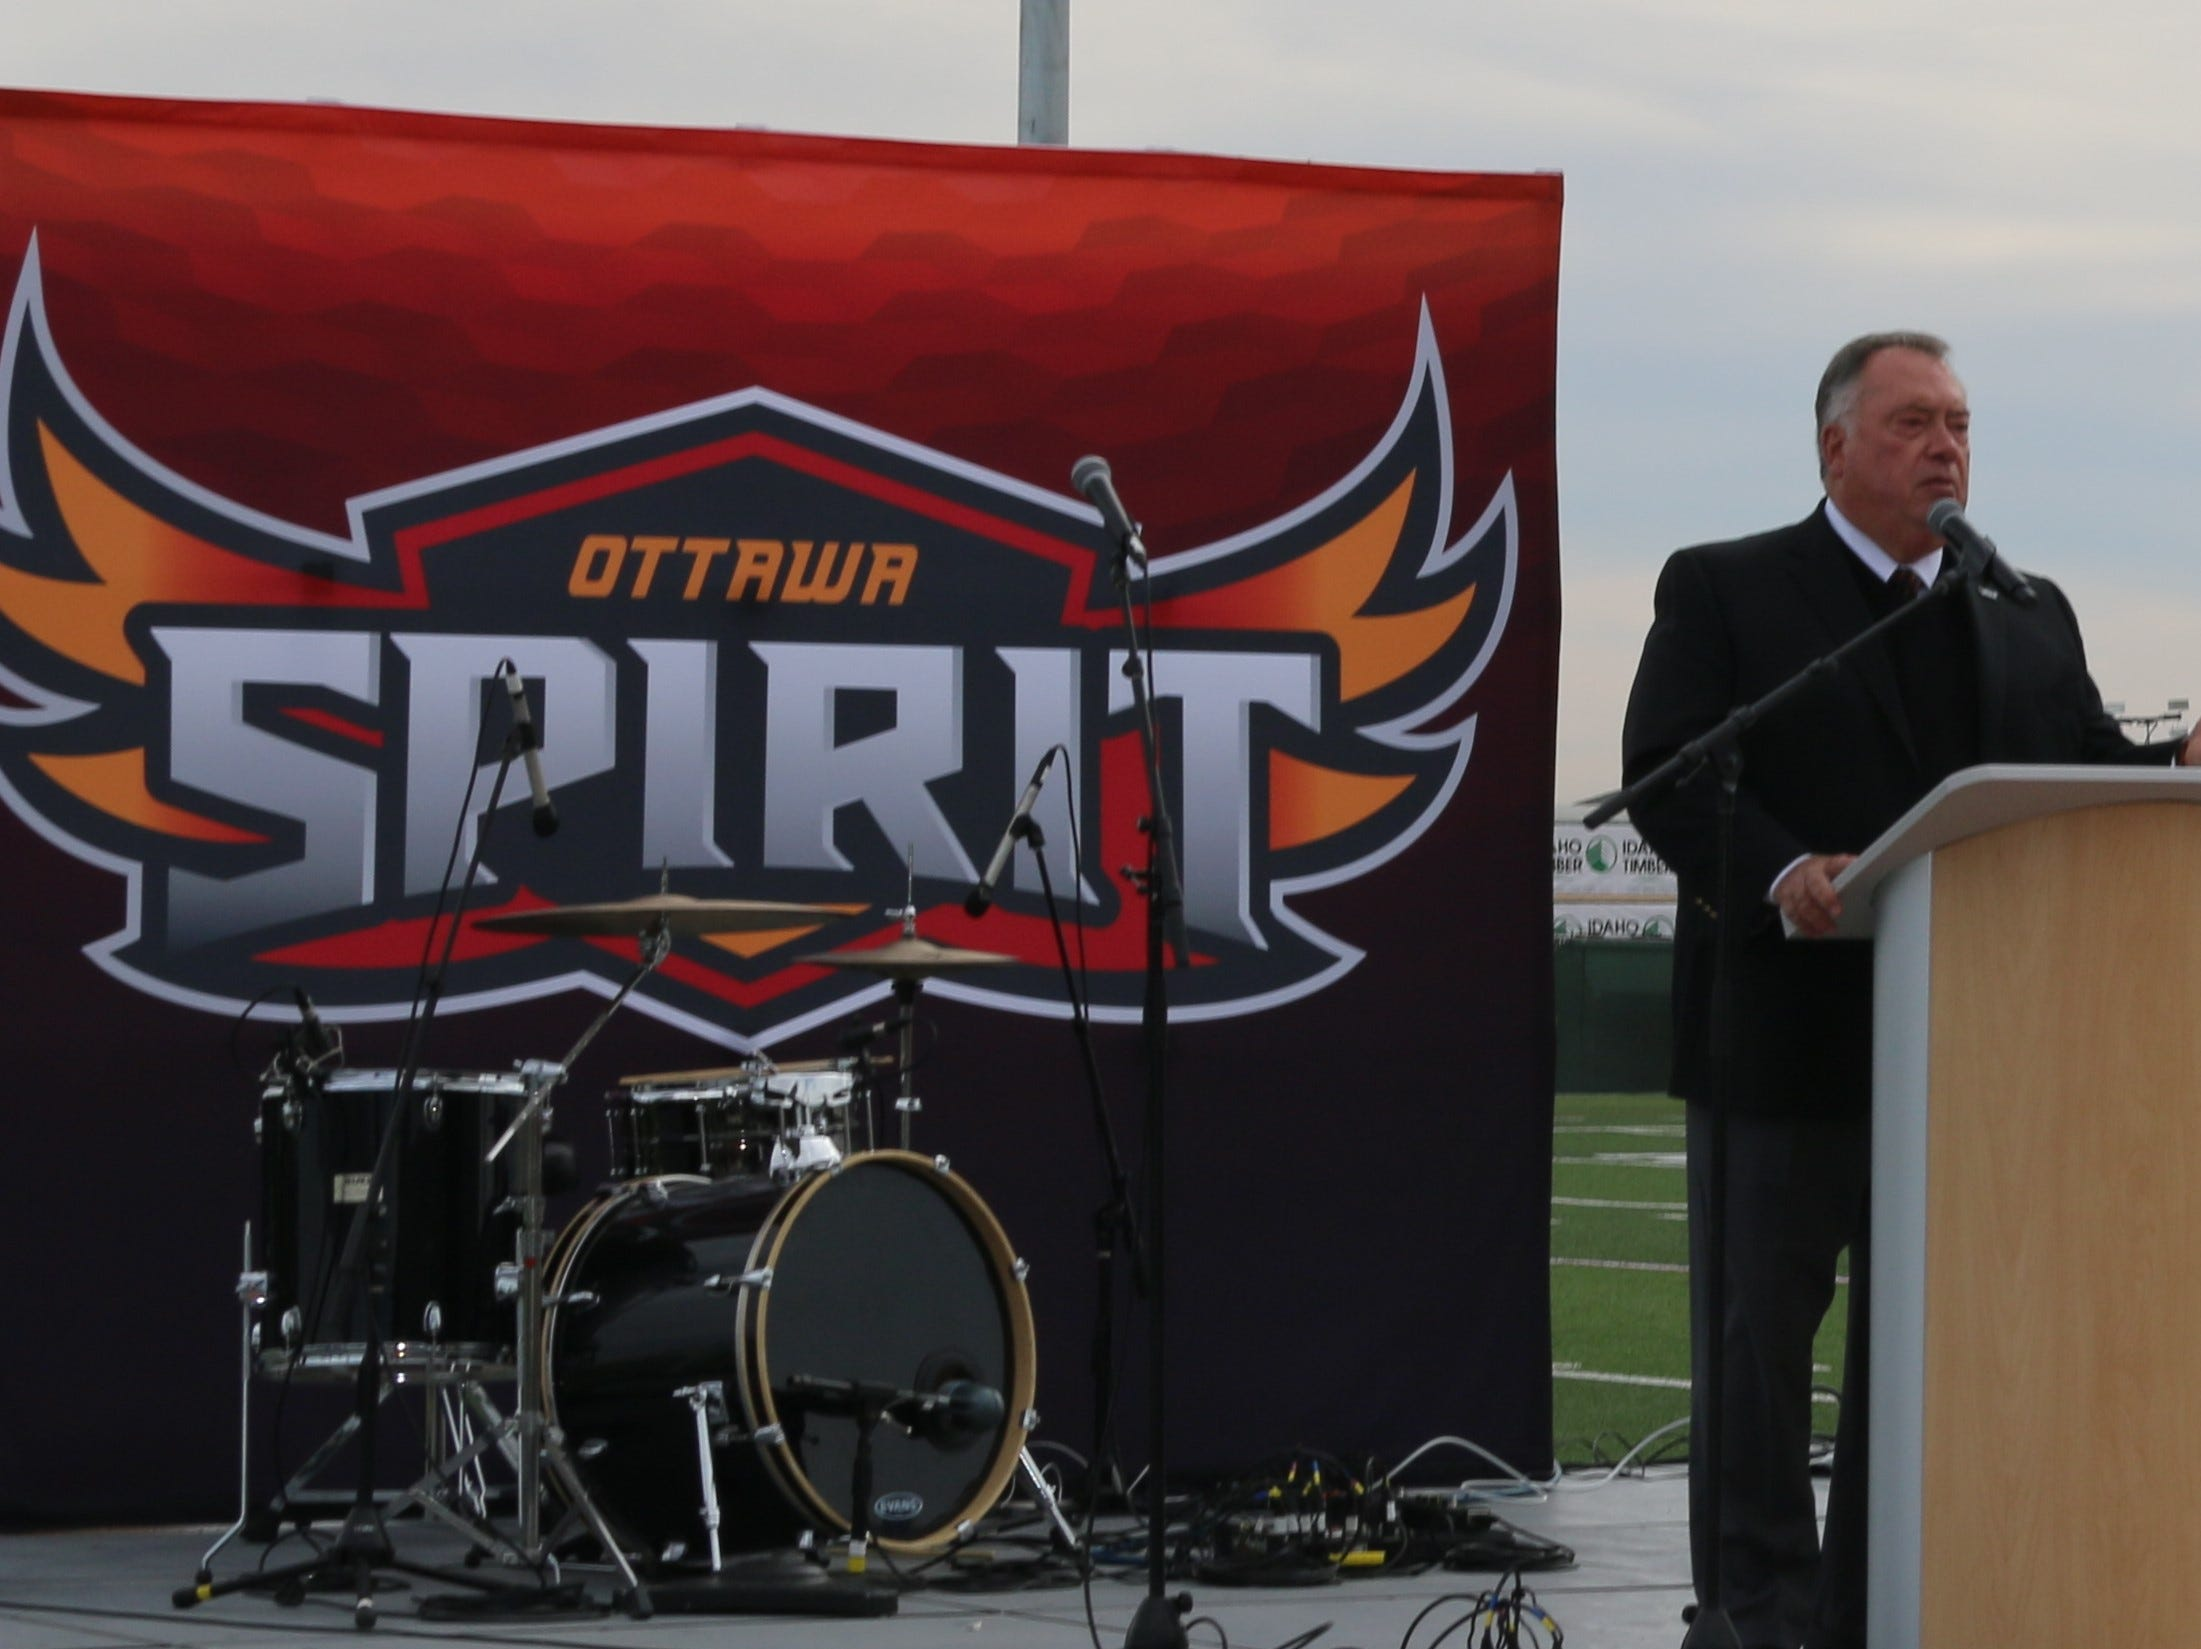 Kevin Eichner, chancellor of Ottawa University, speaks at the groundbreaking for the residence hall at the Surprise campus.